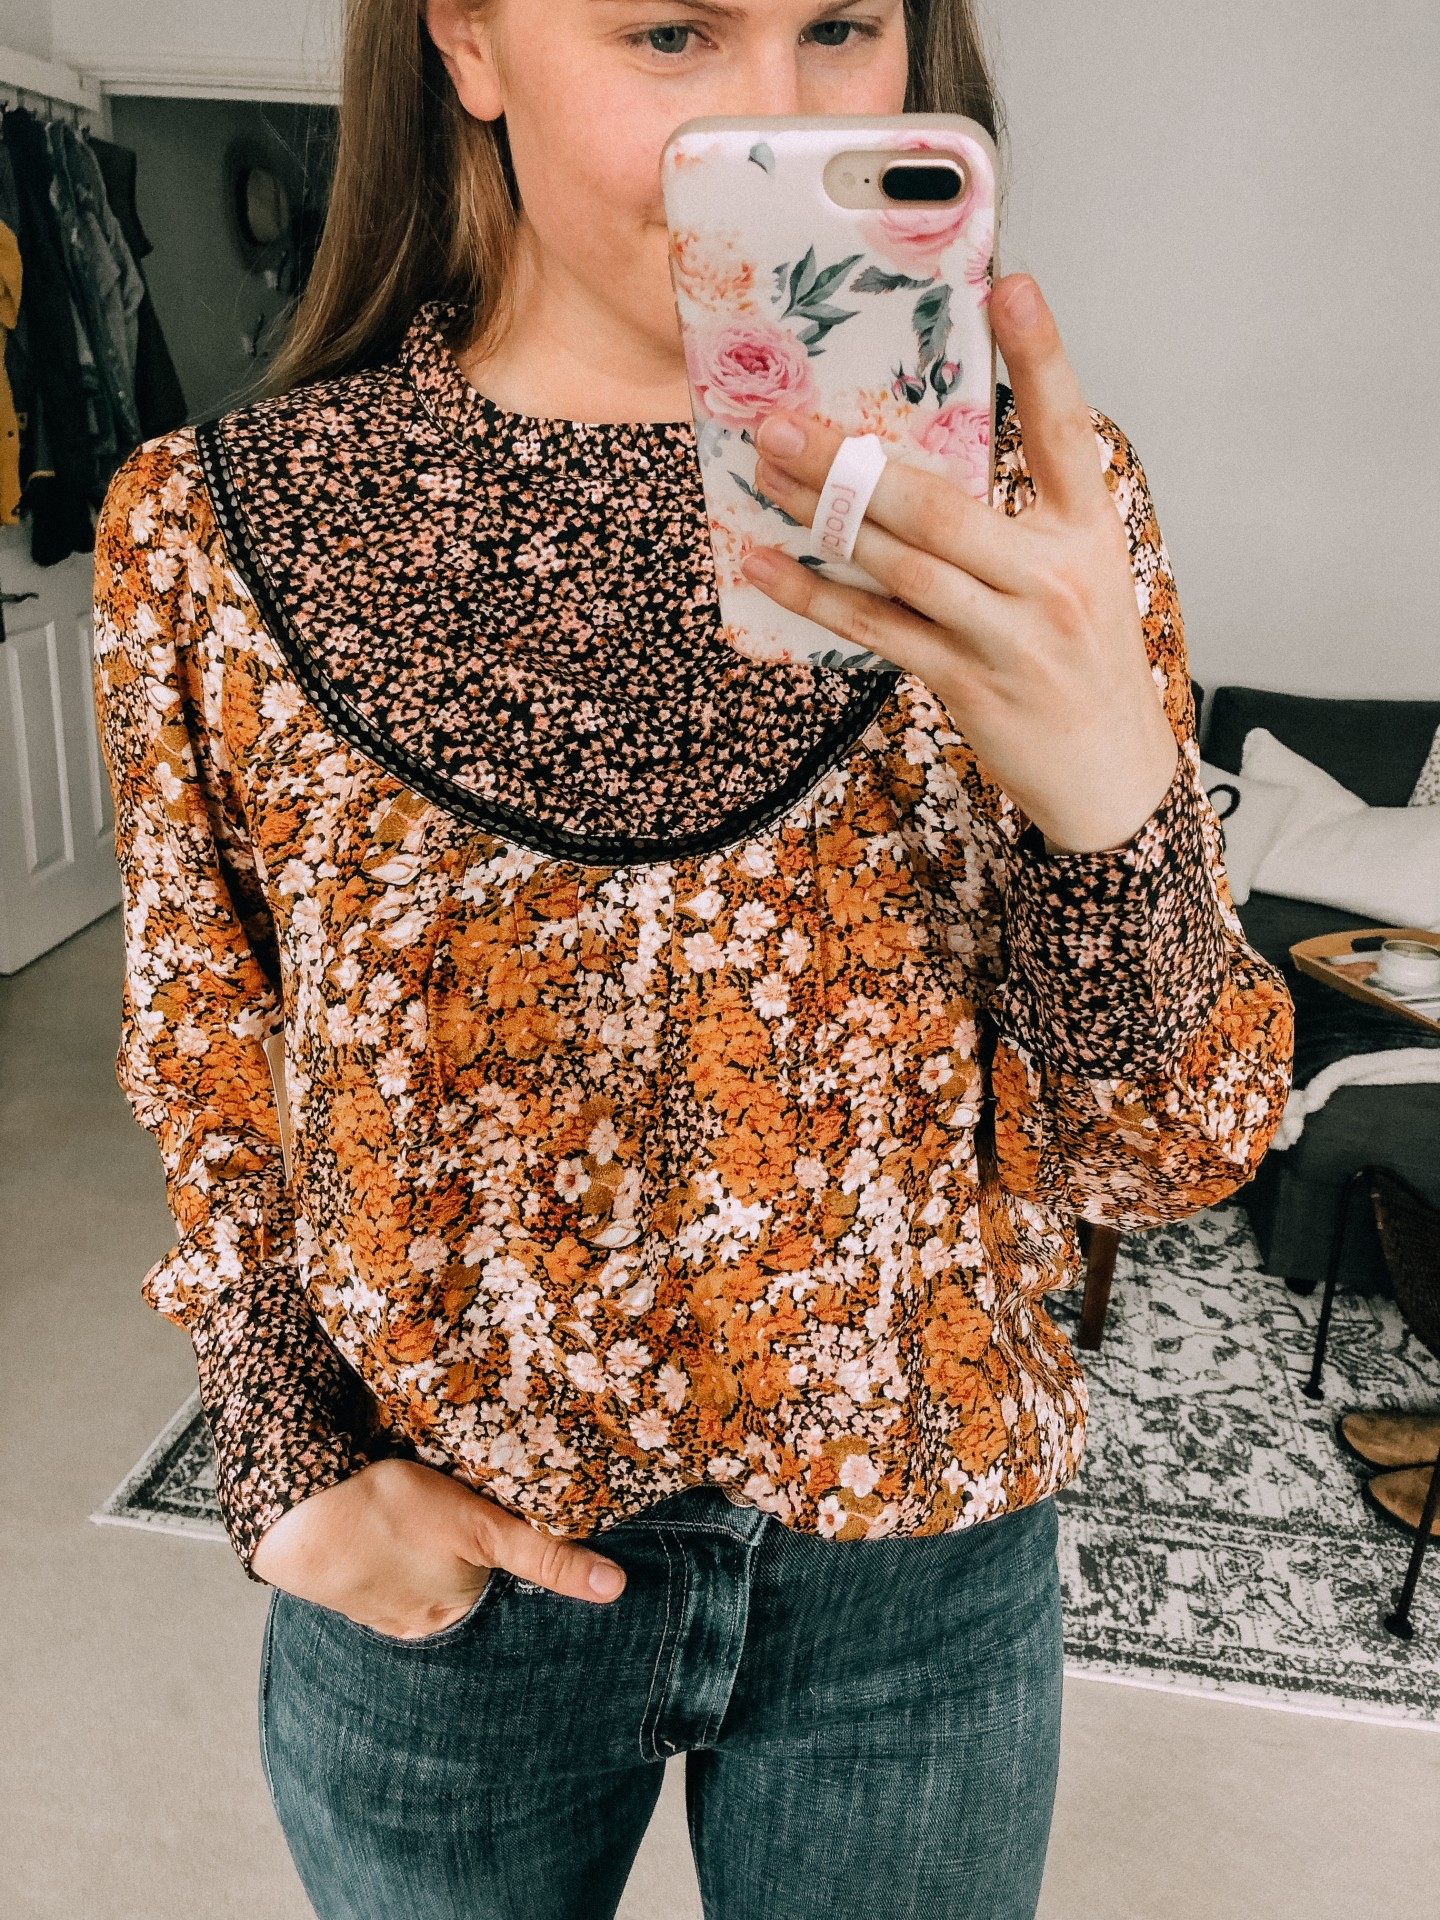 Lifestyle blogger Mollie Moore shares a Nordstrom Anniversary Sale try on haul